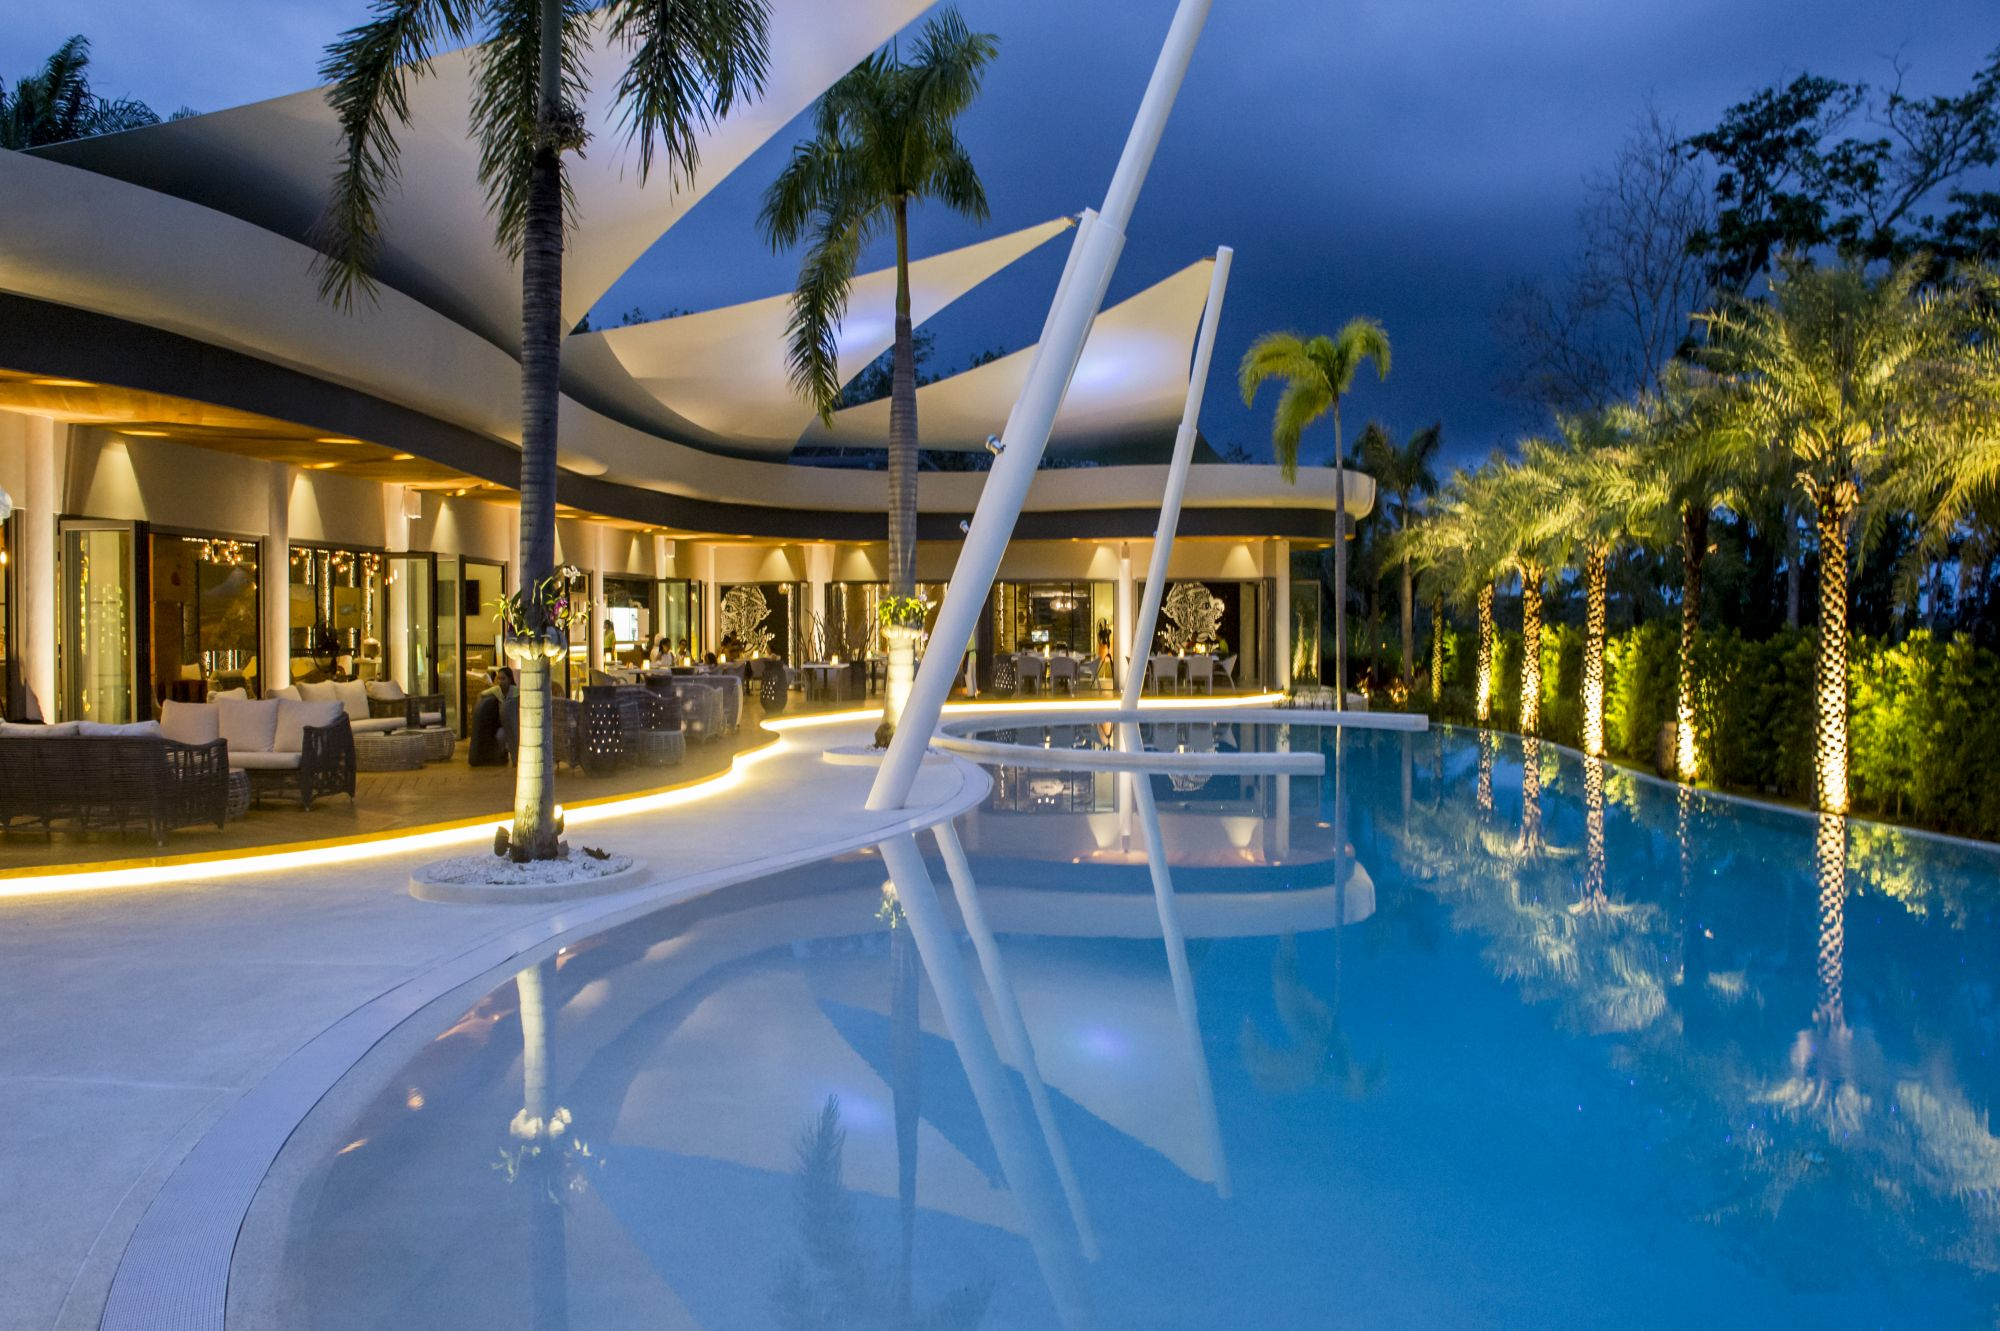 Pavilions Phuket Residences: Your Tropical Home Away From Home